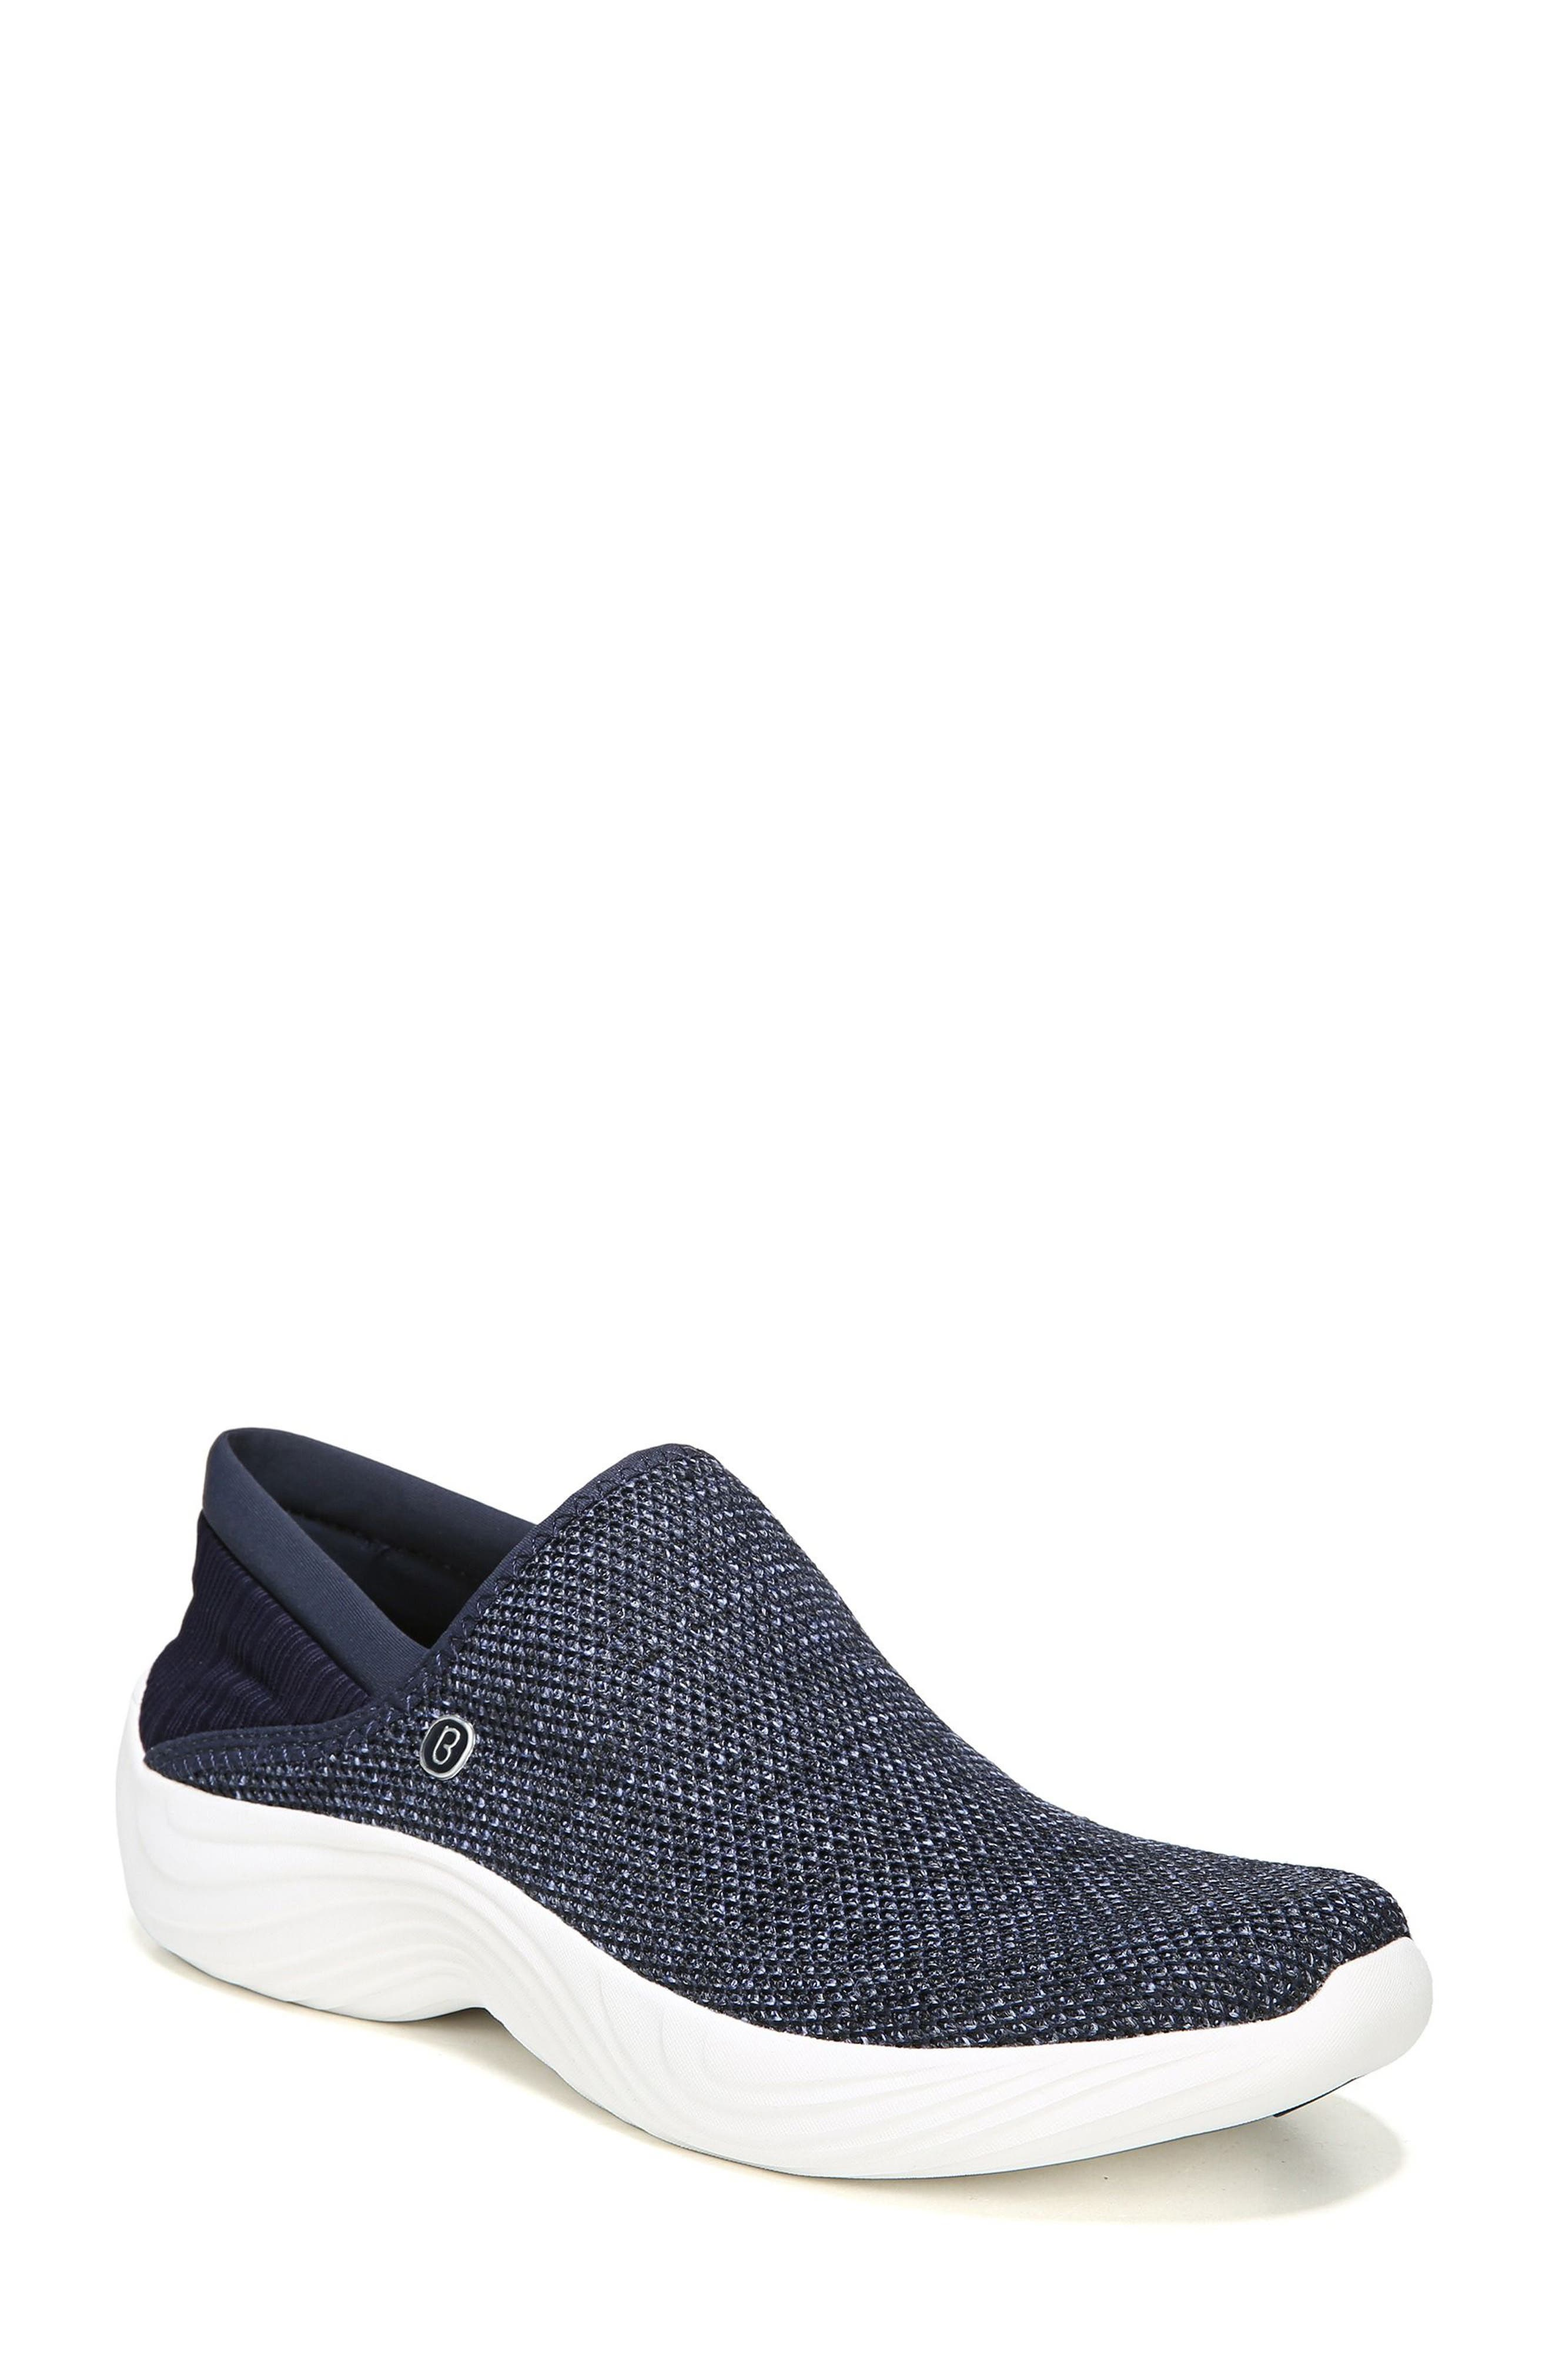 Topaz Slip-On Sneaker,                         Main,                         color, Navy Fabric